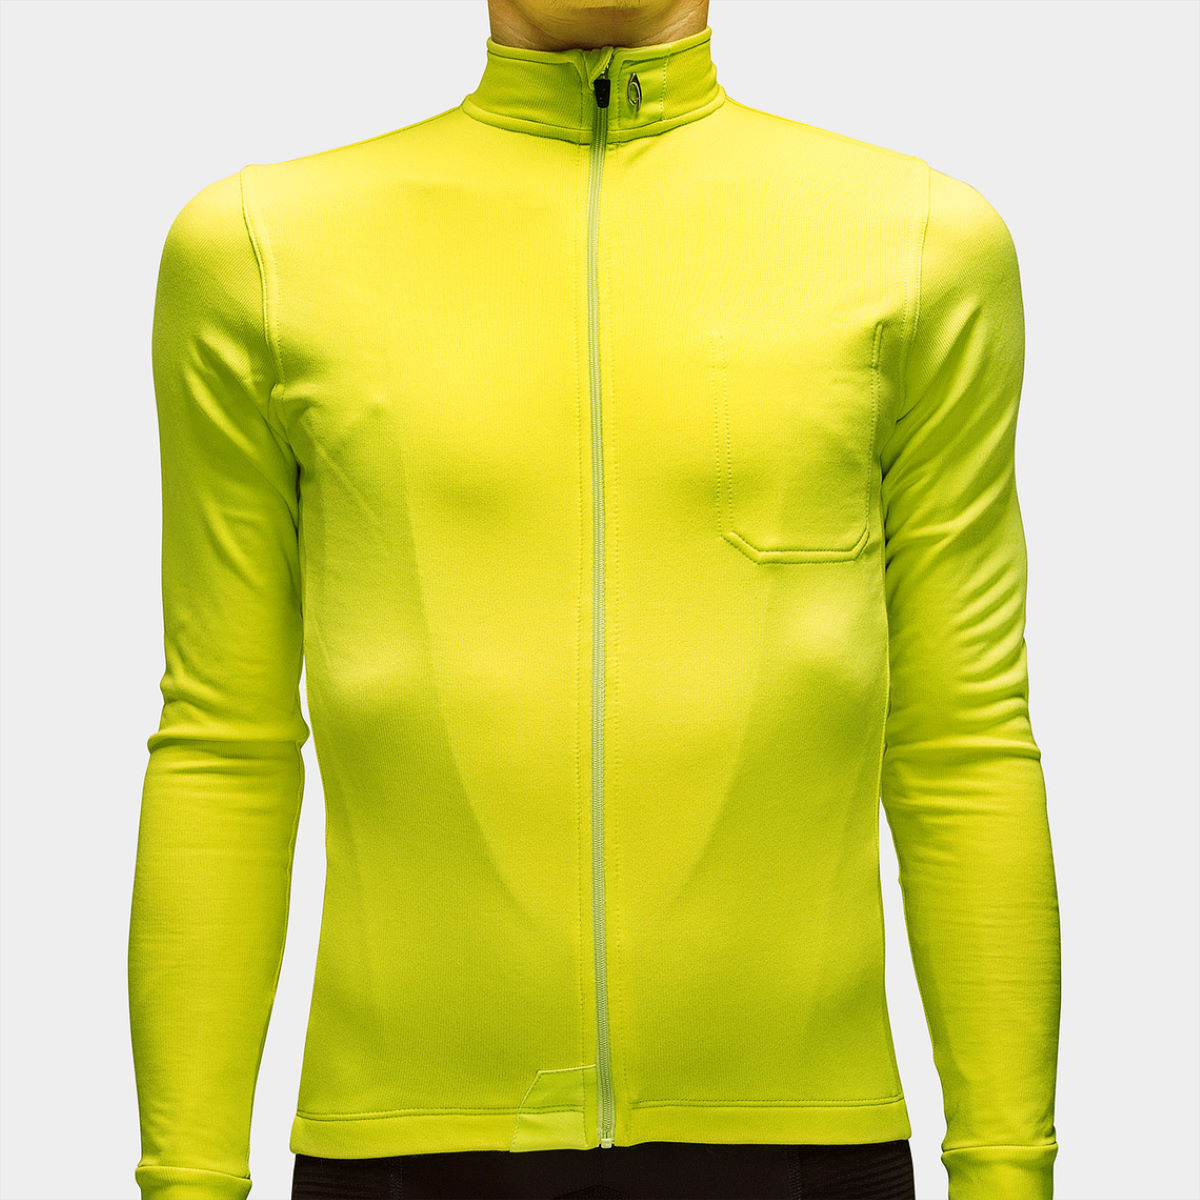 Maillot Isadore (manches longues) - 2XL Sulphur Spring